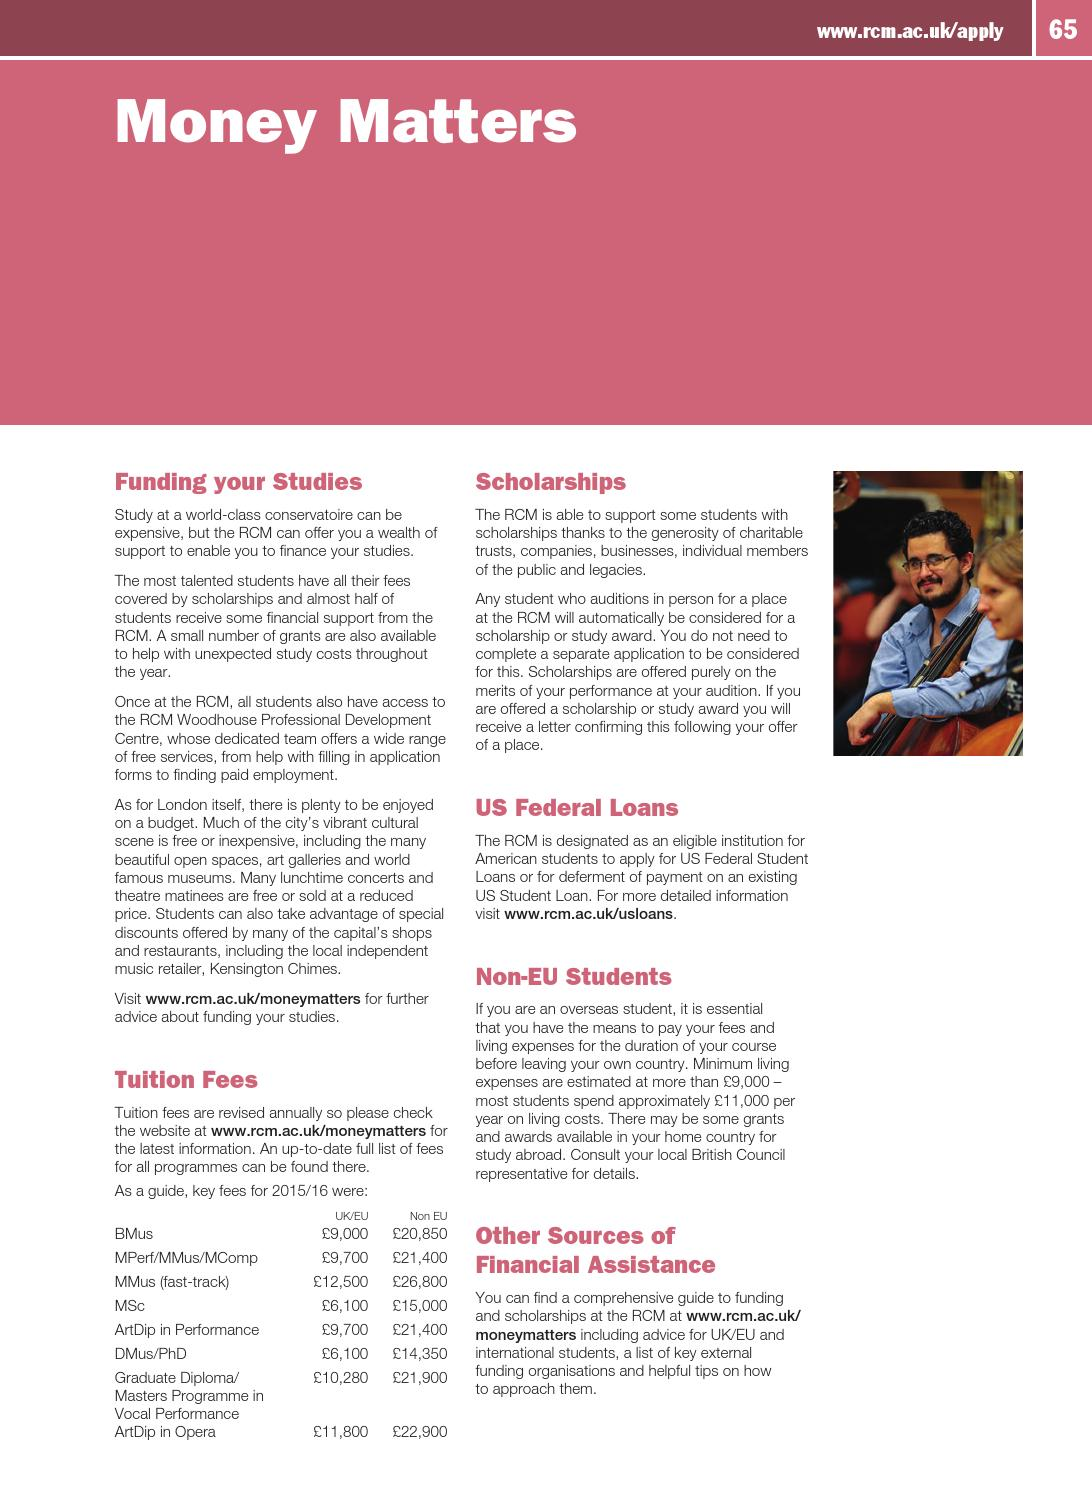 RCM 2016/17 Prospectus by Royal College of Music - issuu